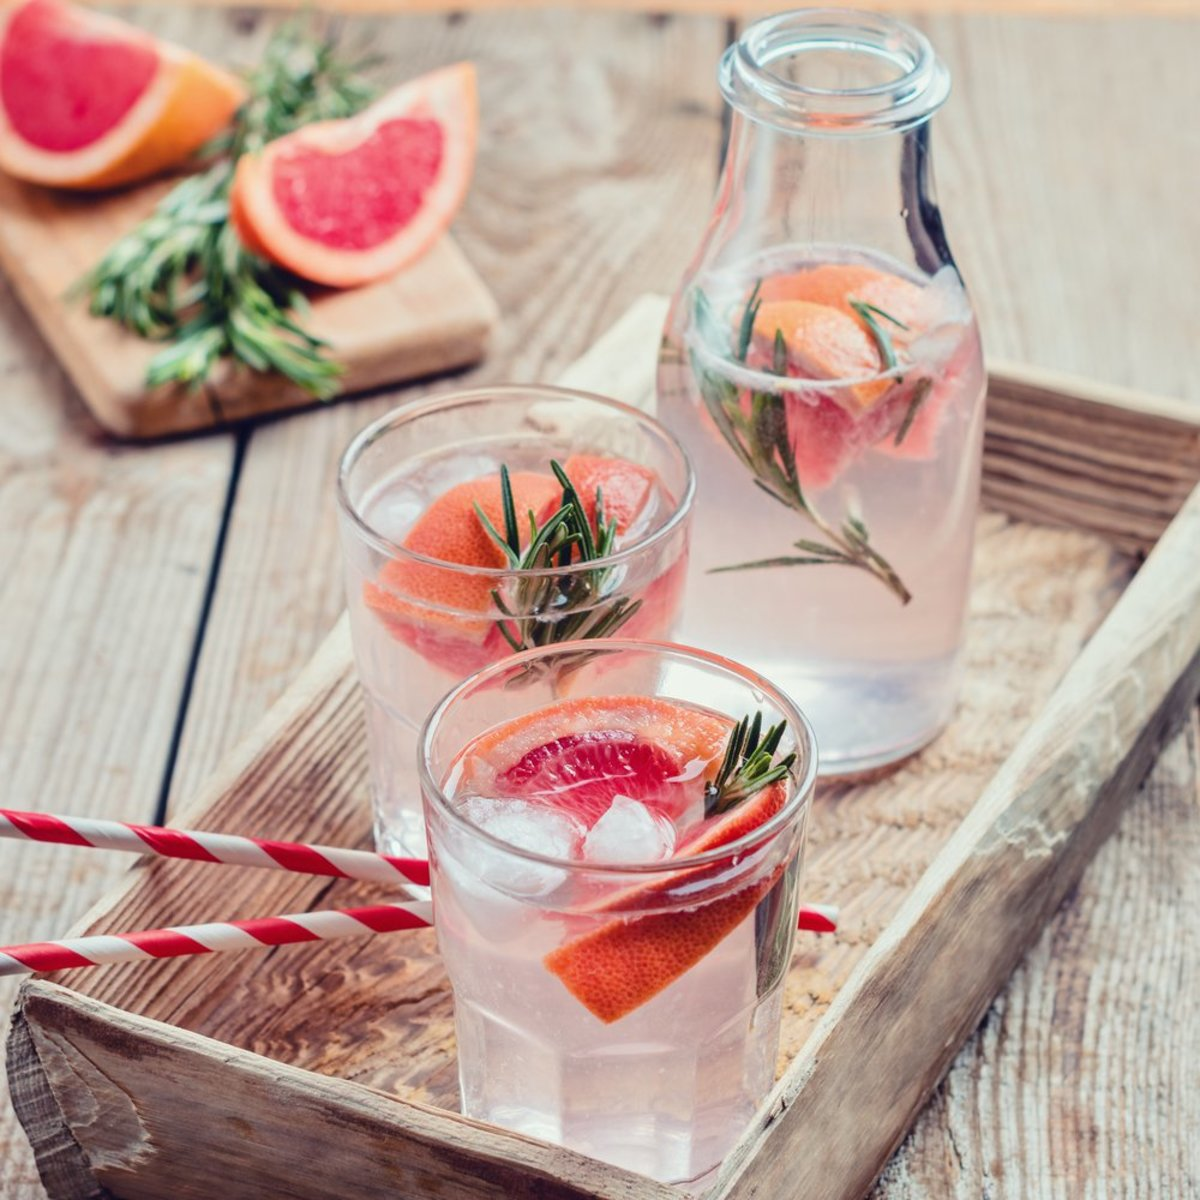 grapefruit-infused water